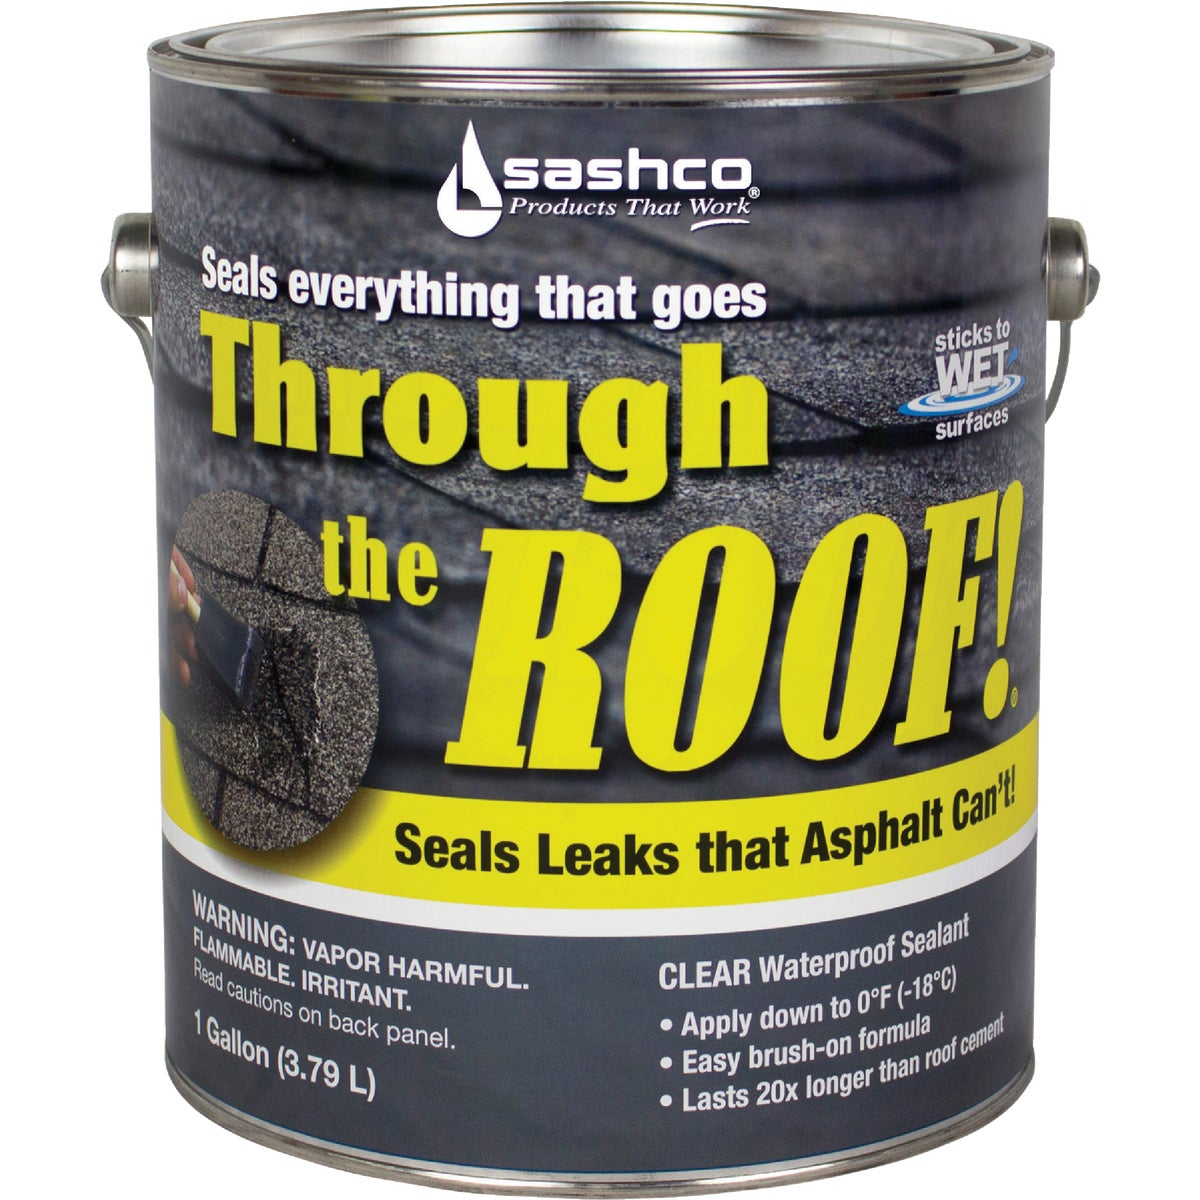 GAL VOC CLR ROOF SEALANT - 14024 by Sashco Sealants Inc